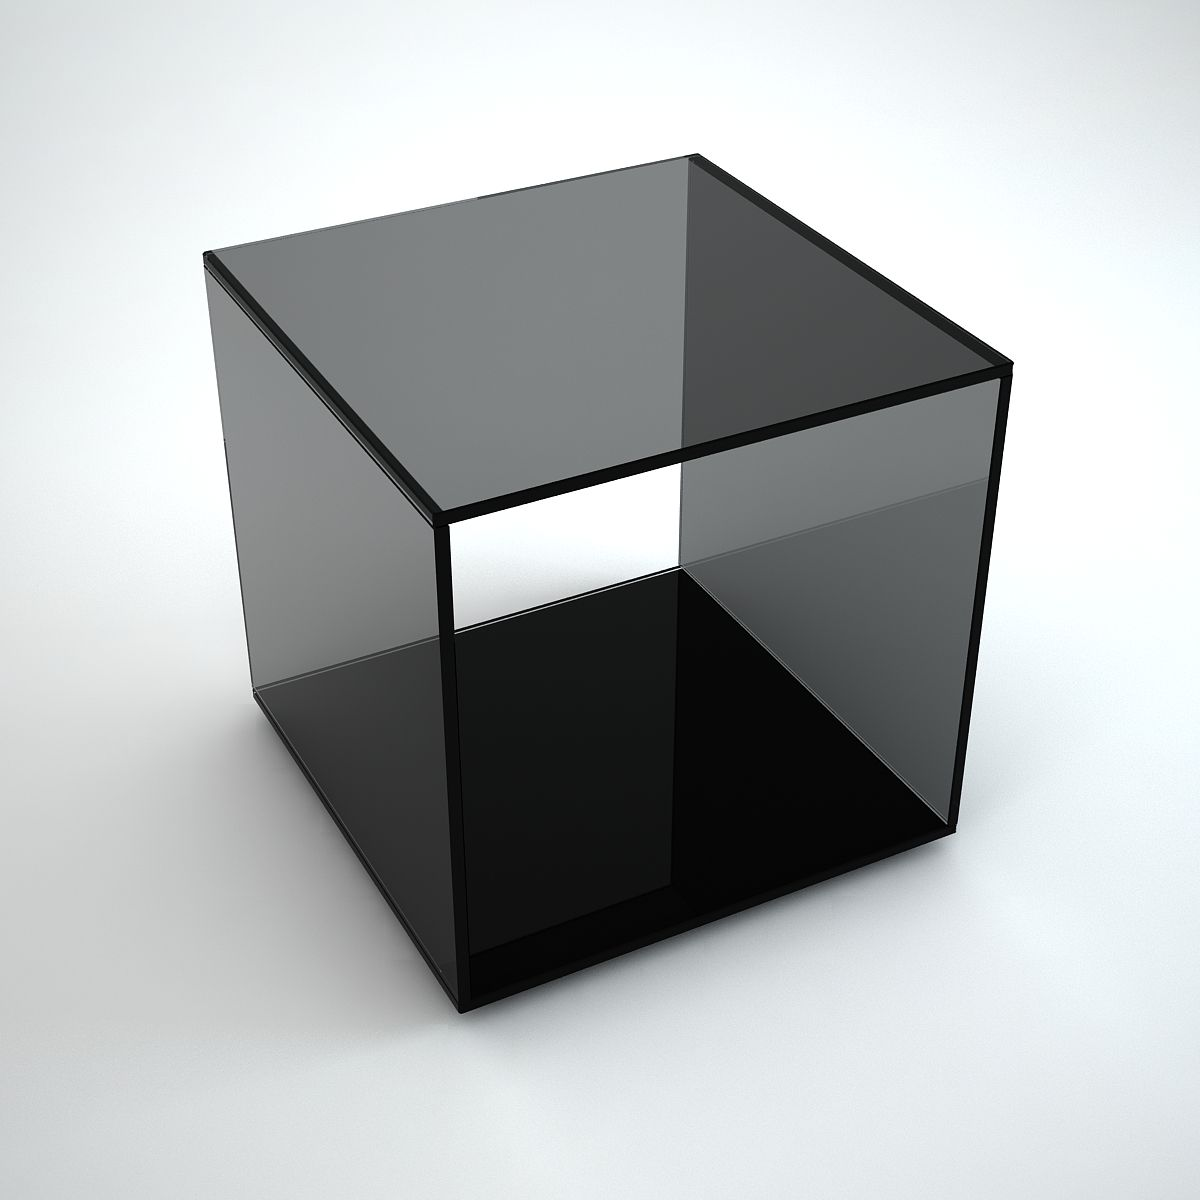 Quebec Grey Tint Glass Side Table By Klarity Klarity Glass Furniture Glass Side Tables All Glass Coffee Table Glass Furniture [ 1200 x 1200 Pixel ]